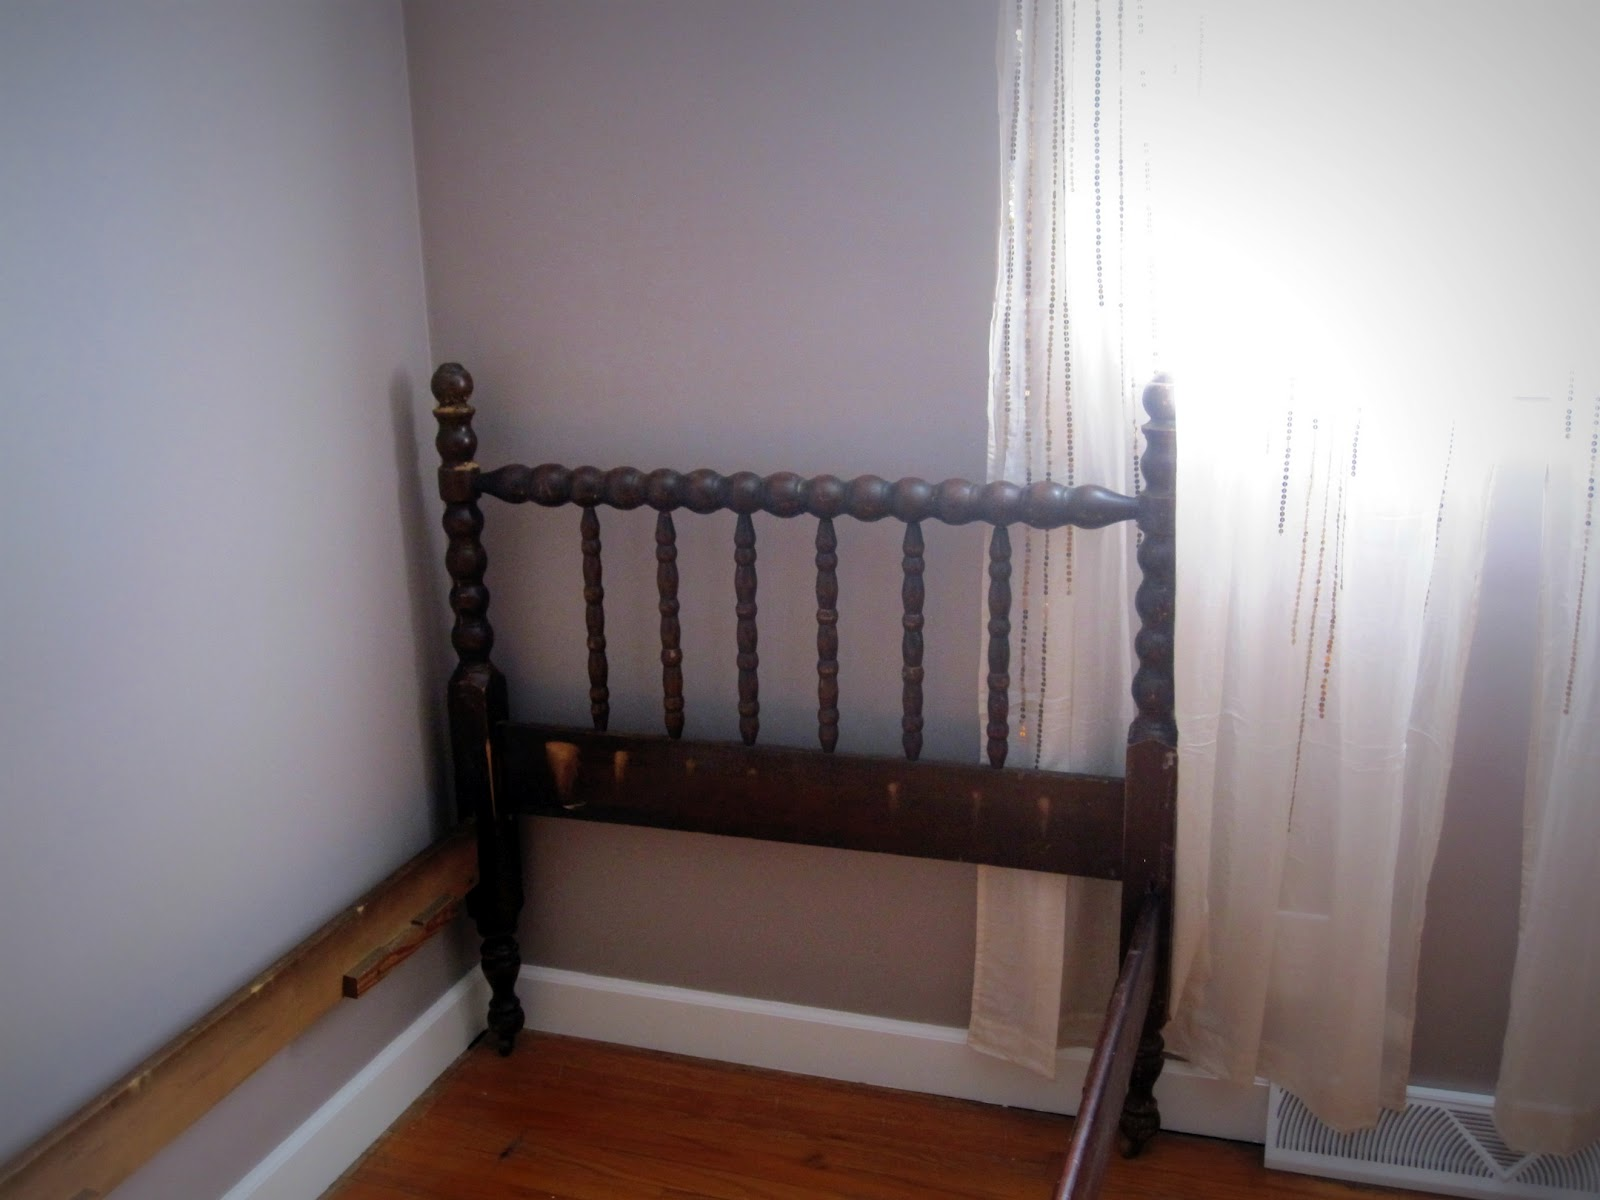 ... Albany, NY For $25. It Was Perfection I Tell You, Perfection! On  Saturday I Drove Out With My Oh So Stylinu0027 Station Wagon And Loaded That  Baby Up And ...